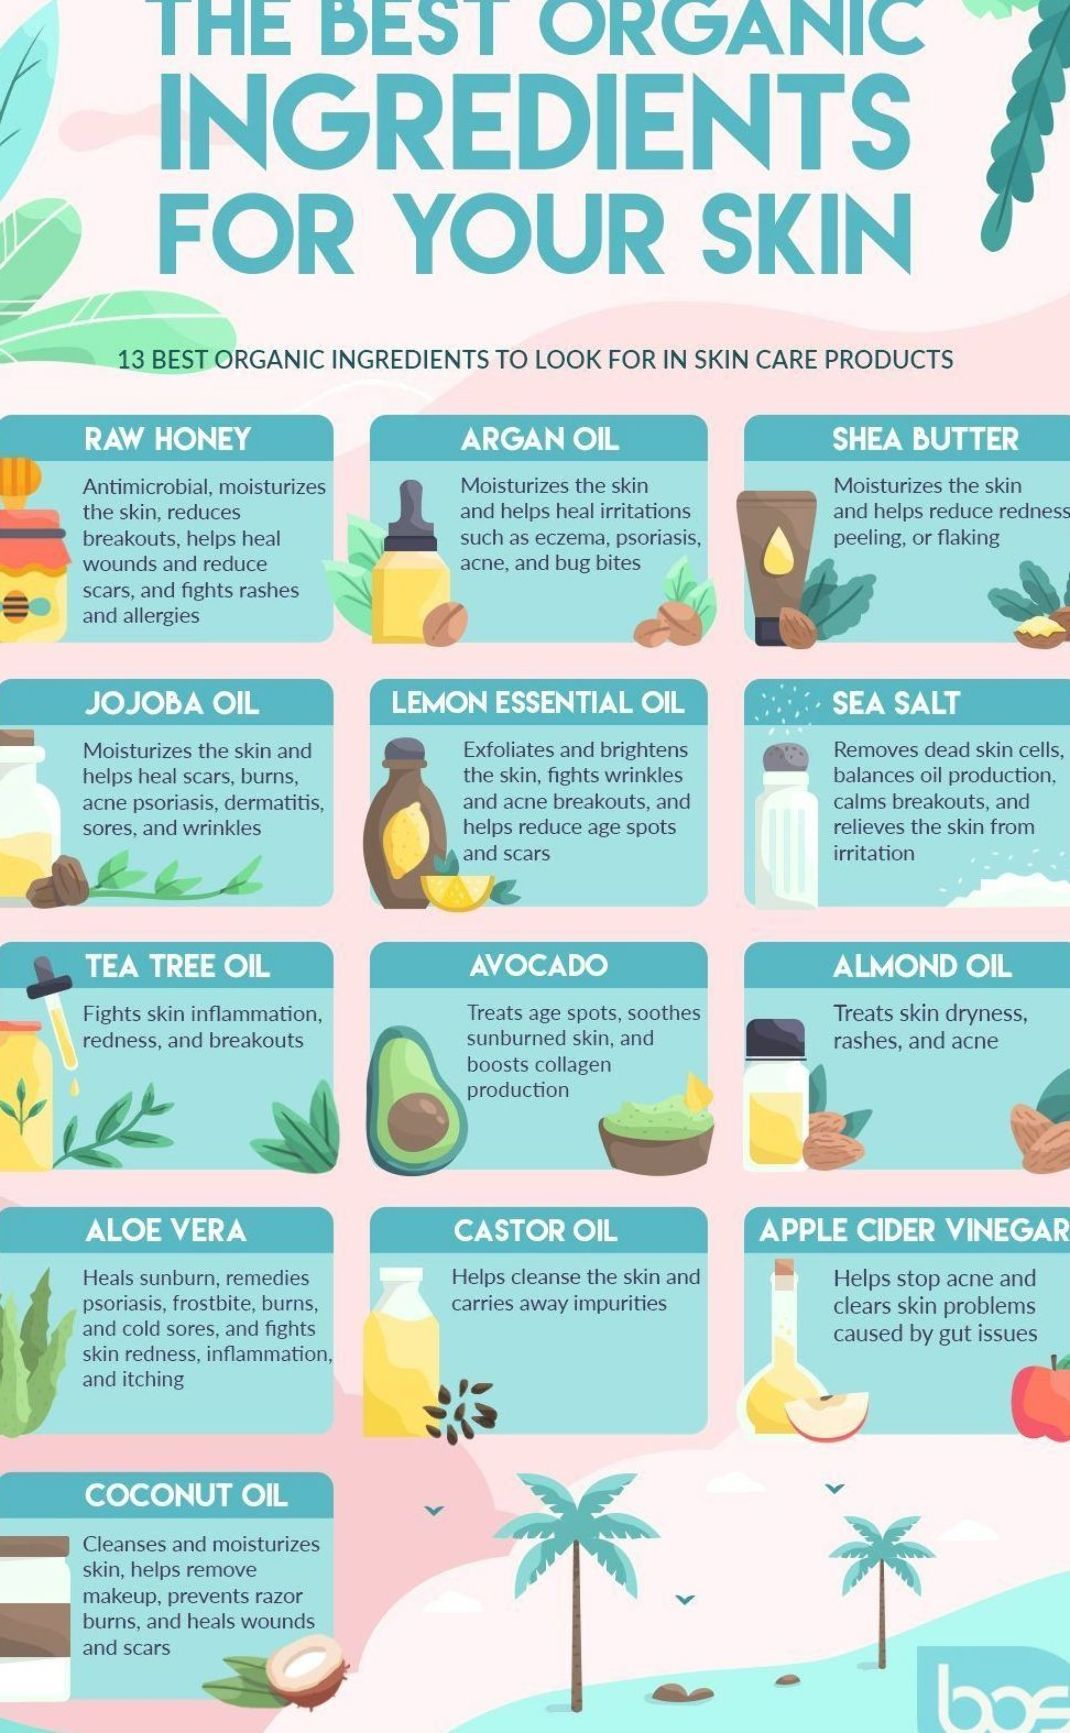 Infographic Skincare Products Best Organic Ingredients To Look For In Skin Care Products In 2020 Skin Care Organic Ingredients Argan Oil And Shea Butter